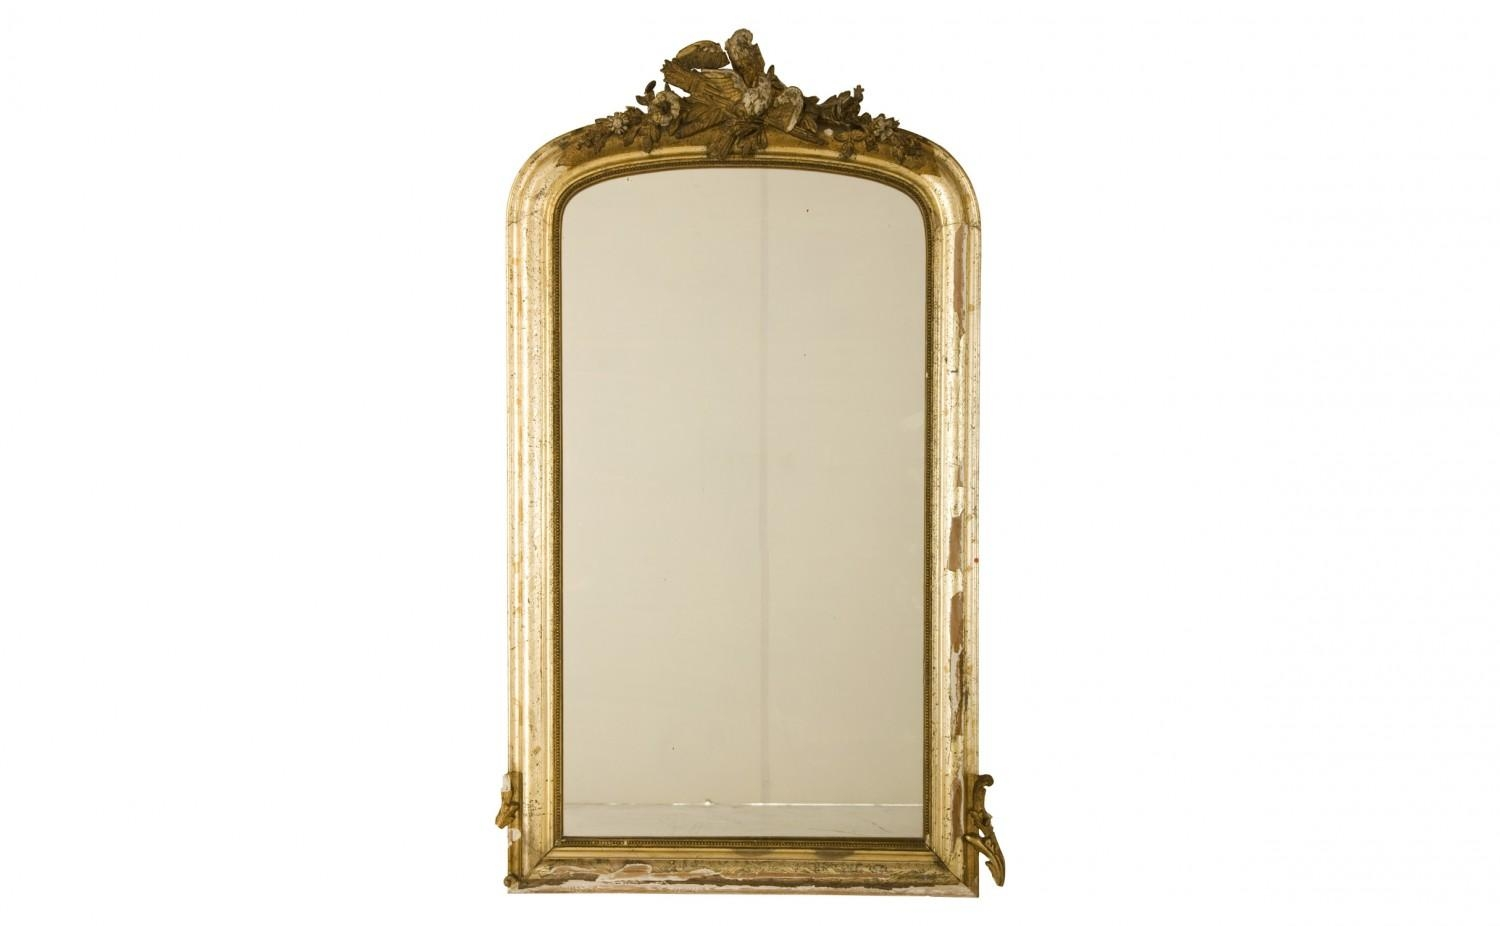 Antique Gilt Mirror | Jayson Home With Antique Gilt Mirror (Image 9 of 20)